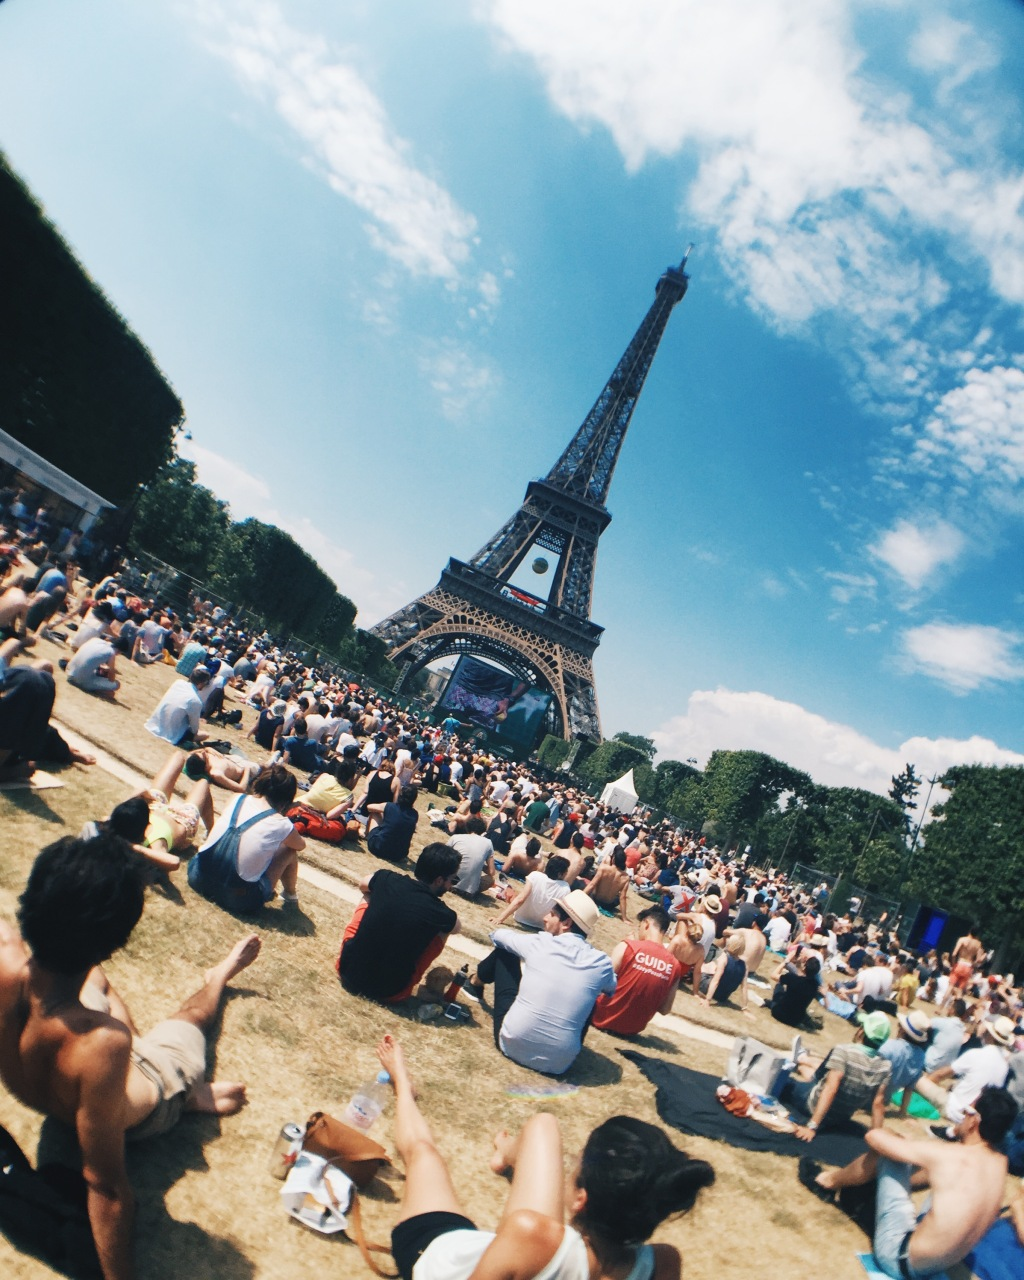 Roland Garros French Open outdoor tennis viewing at the Eiffel Tower